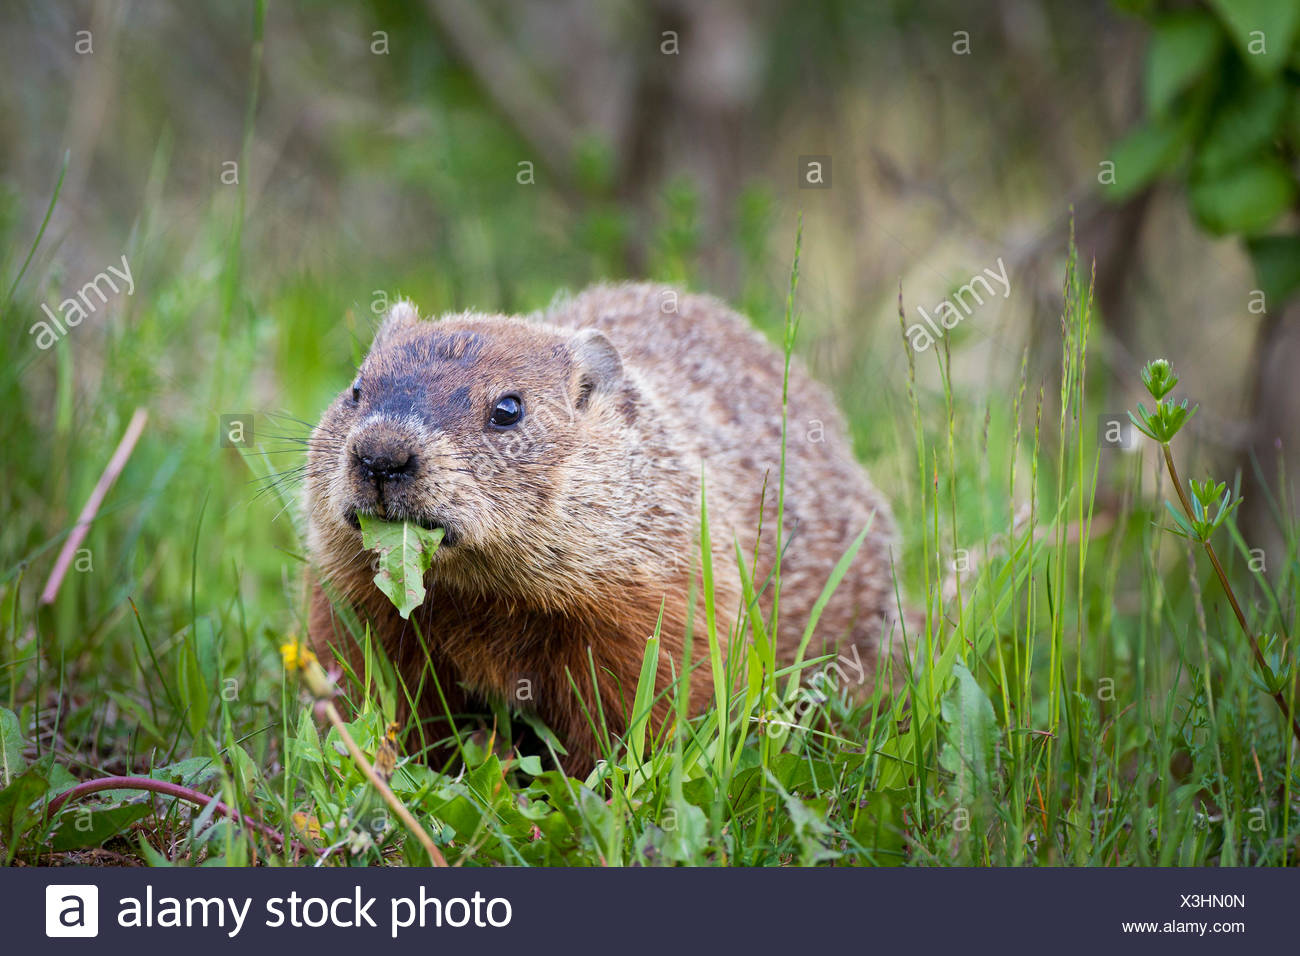 A Woodchuck or groundhog (Marmota monax) with a leaf in its mouth in Forillon National Park, Quebec, Canada - Stock Image